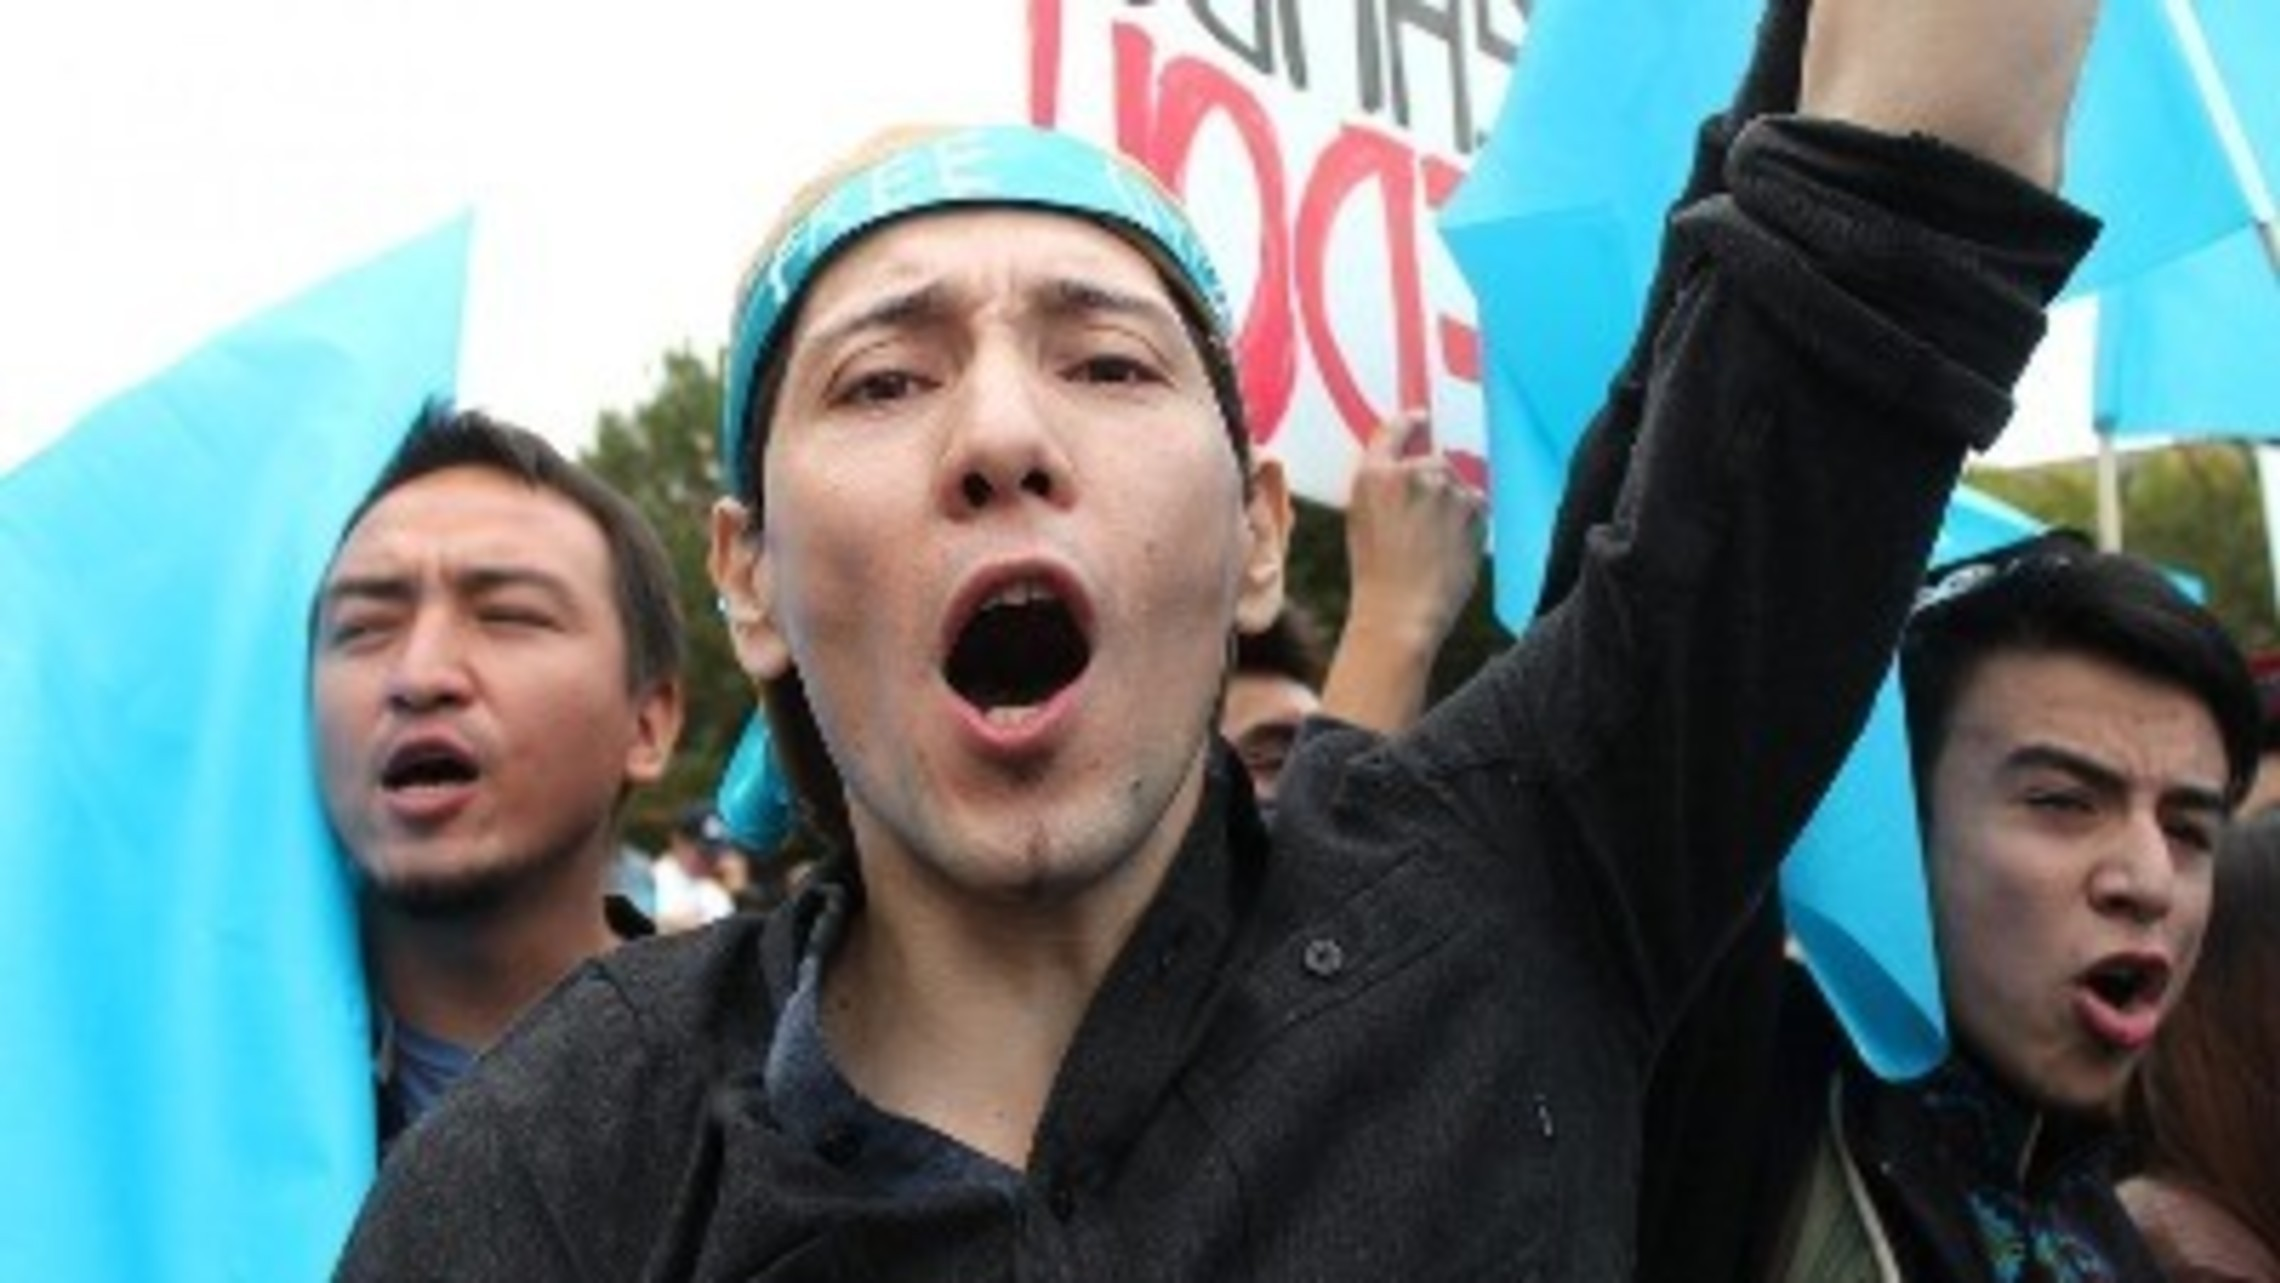 Uyghurs Protest Washington 1200x800 1 1140x641 1 1